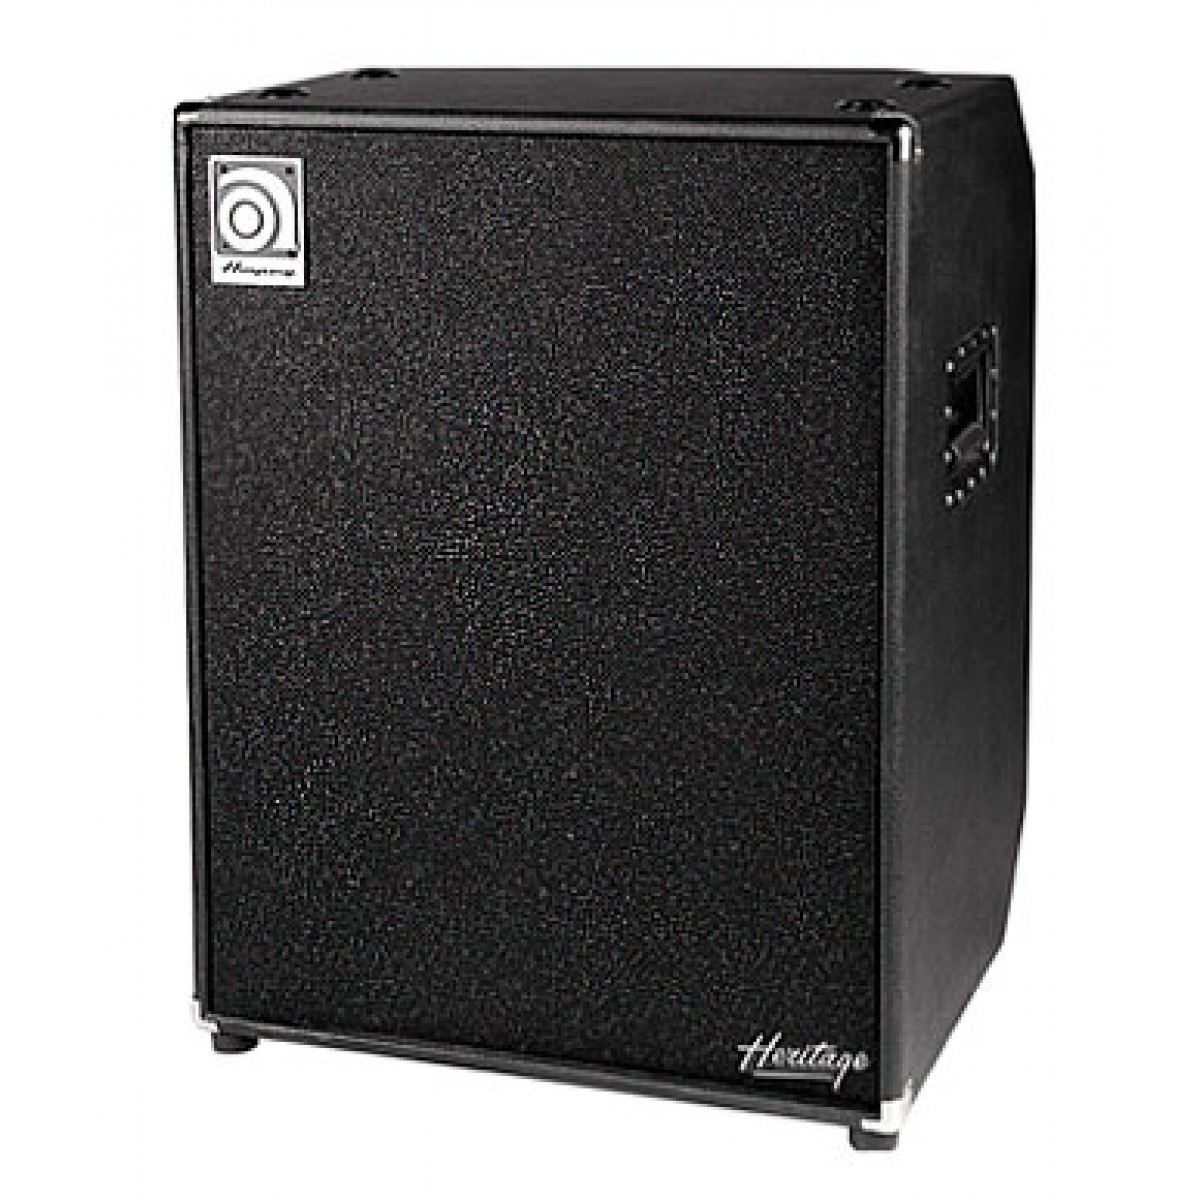 ampeg svt cabinet dating This is the speaker enclosure people mean when they refer to an svt speaker cabinet using the same design dating all the the ampeg svt-810av stands tall.